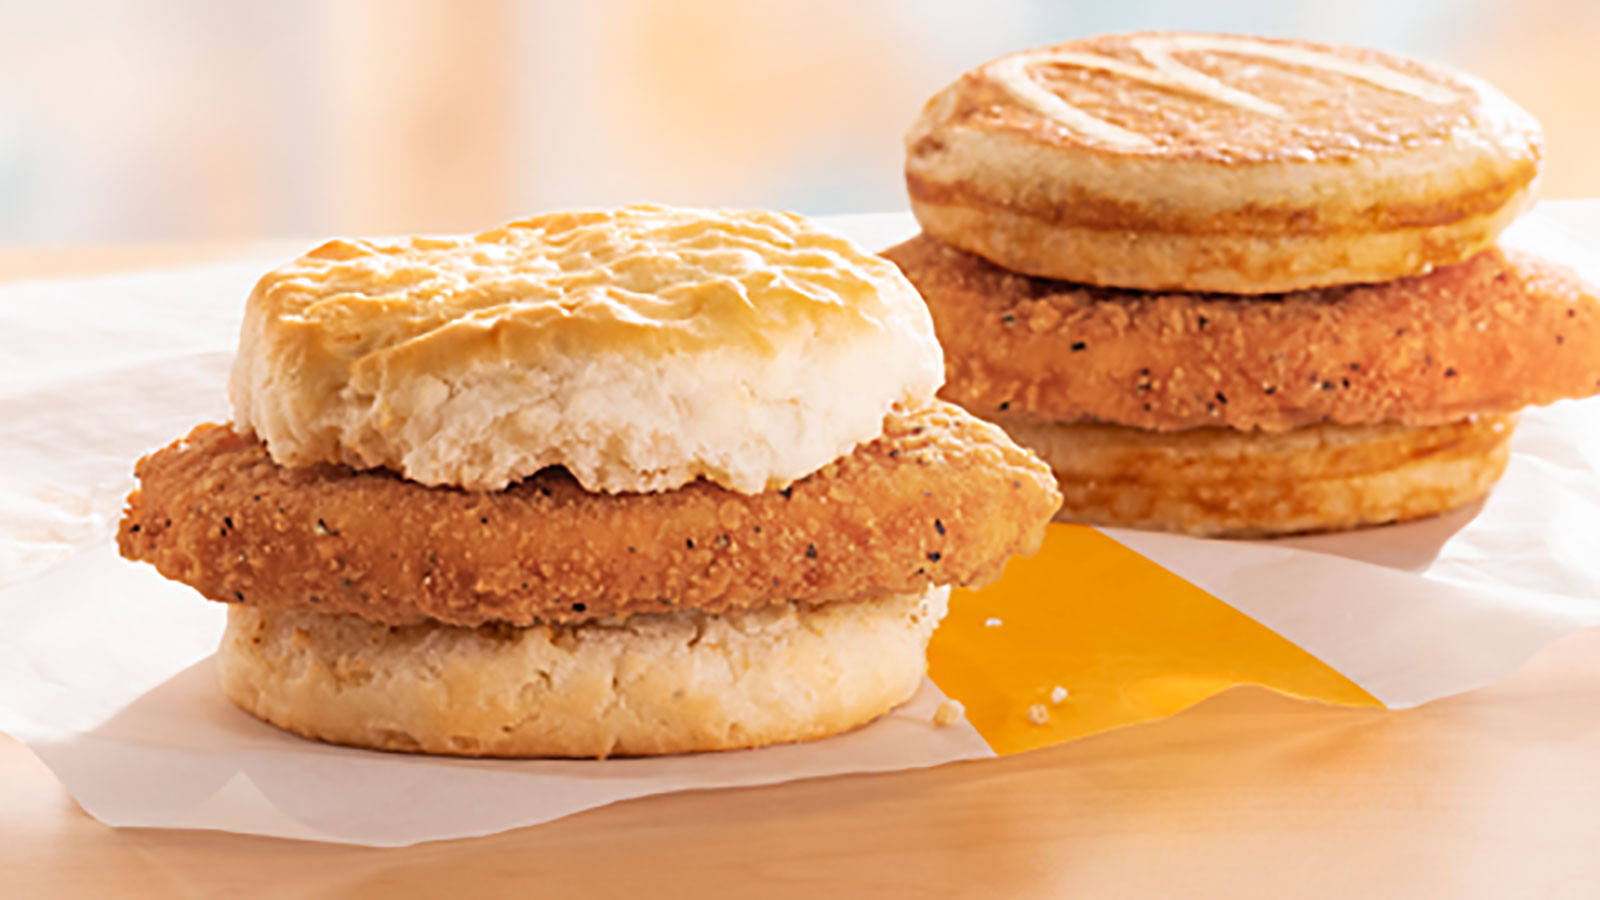 McDonald's is fighting the breakfast war with chicken sandwiches